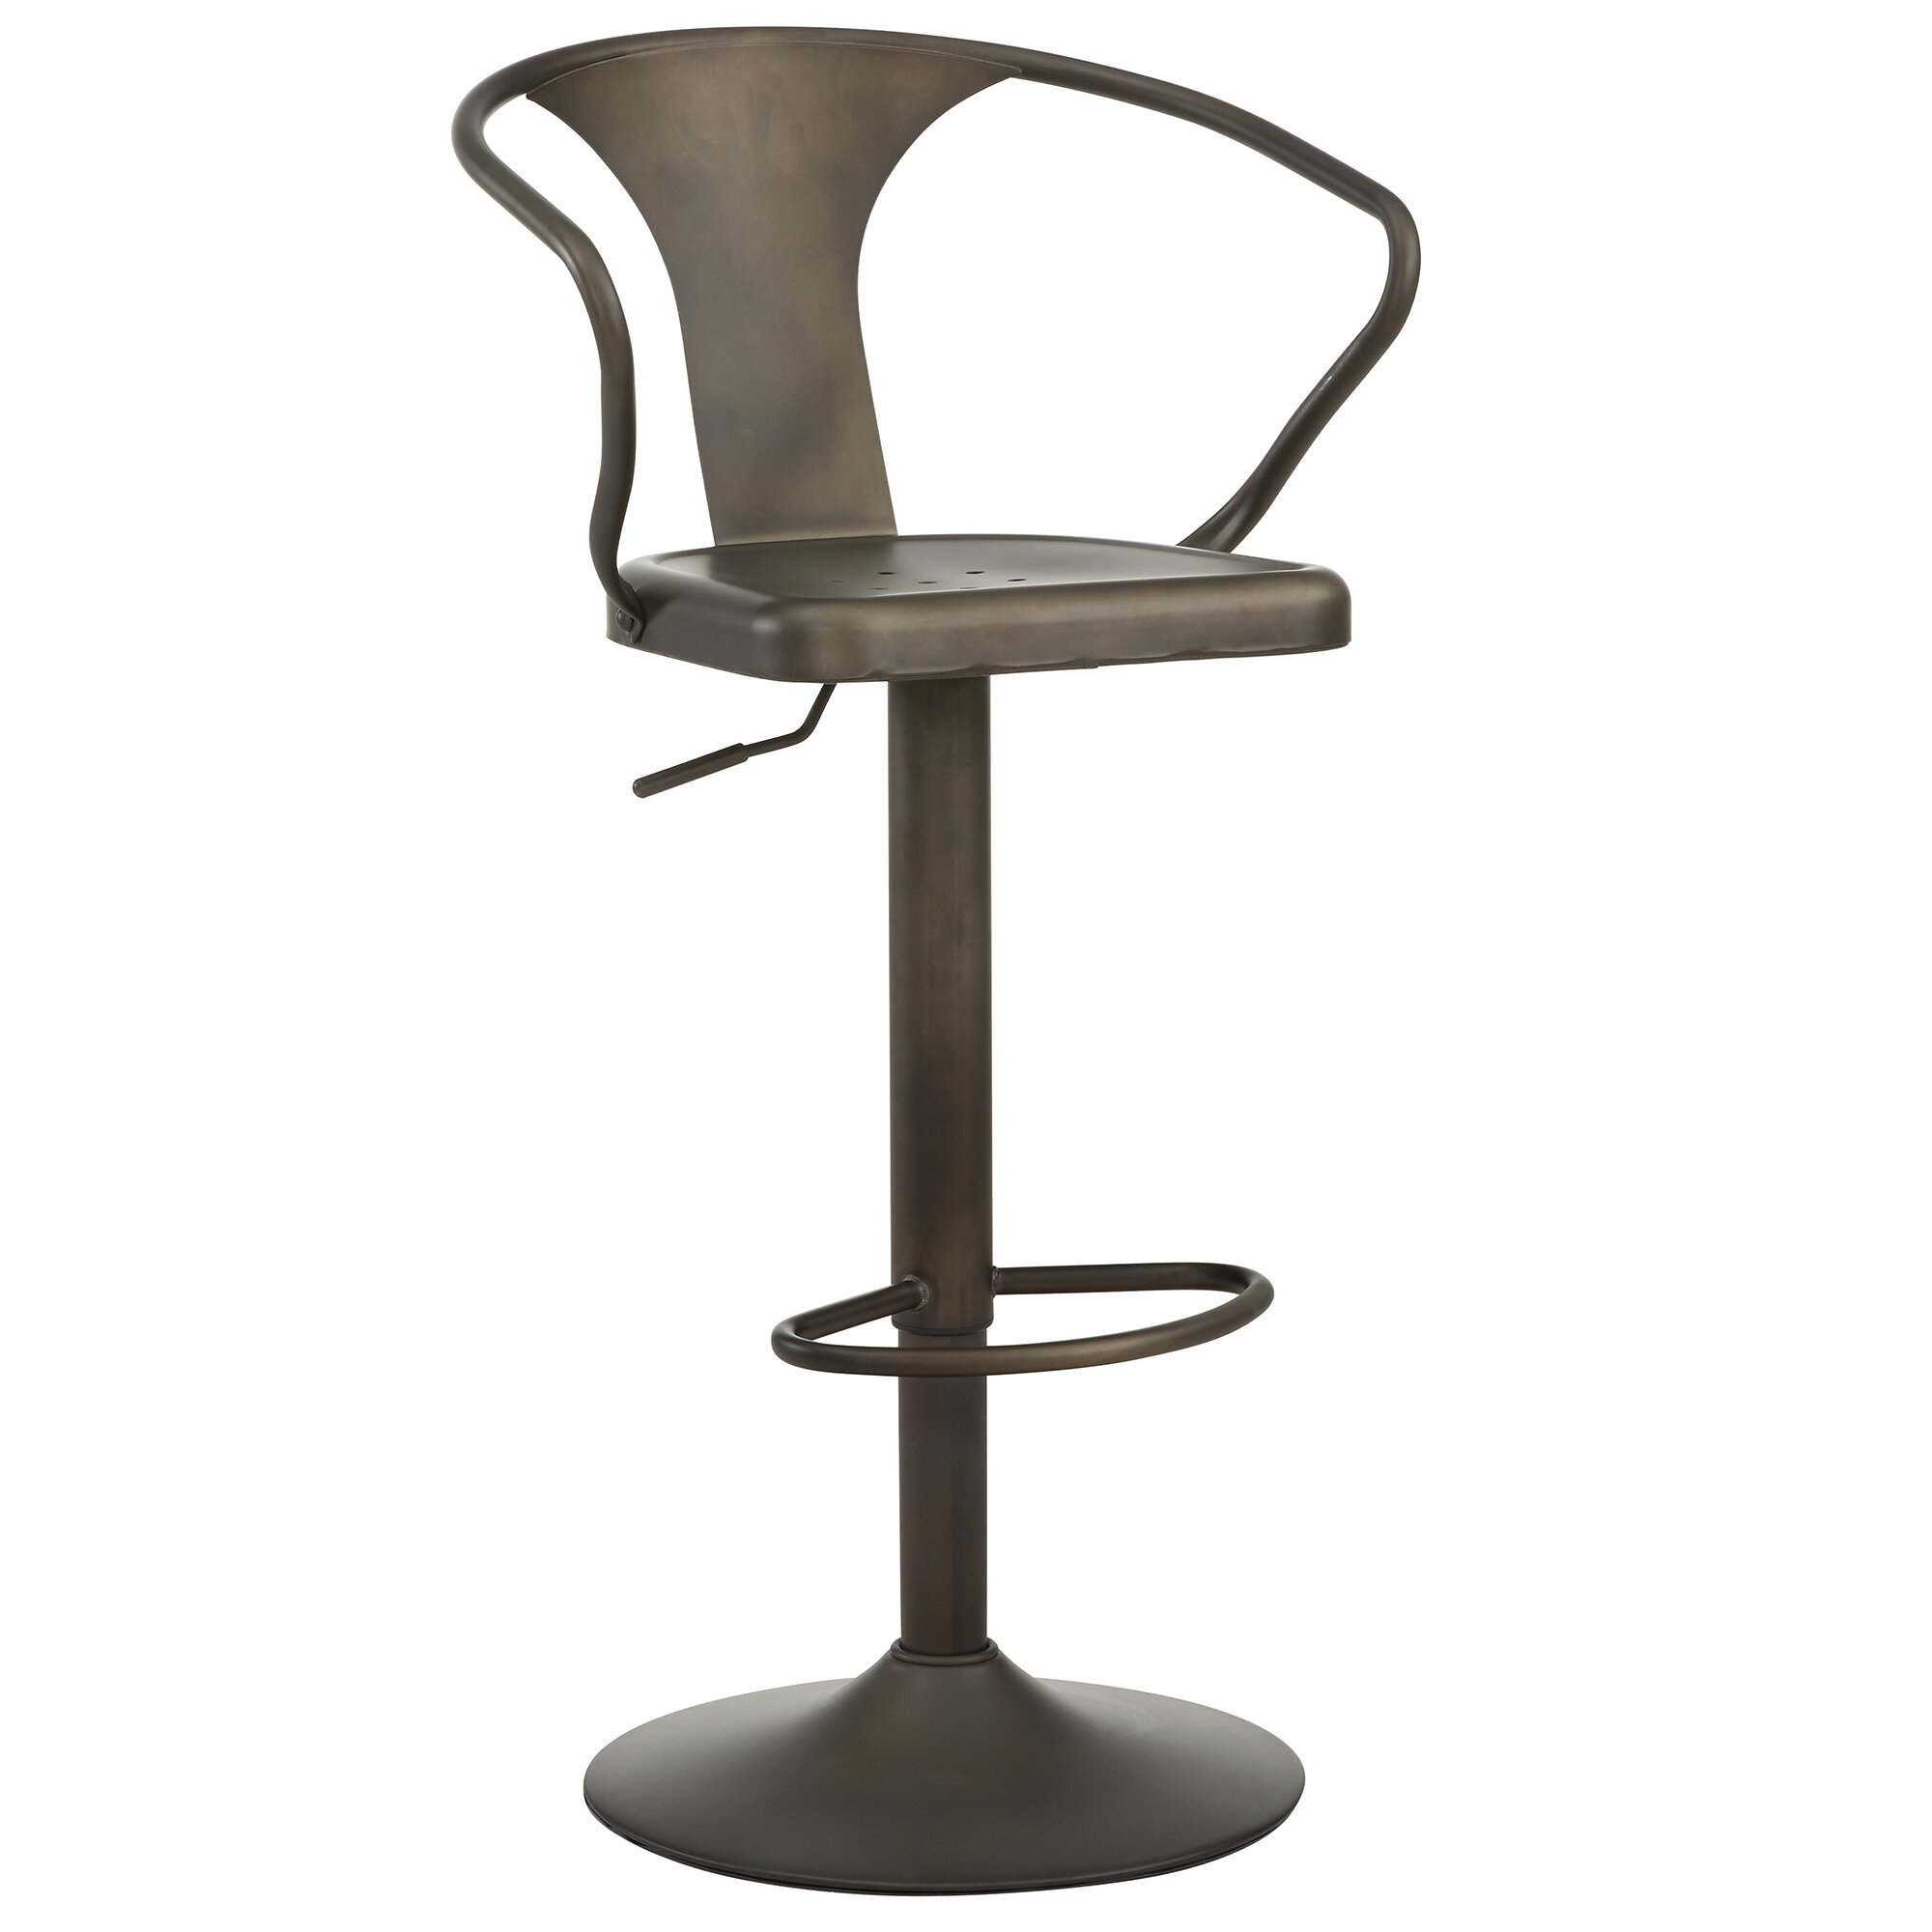 Excellent Nspire Adjustable Height Swivel Bar Stool Reviews Wayfair Squirreltailoven Fun Painted Chair Ideas Images Squirreltailovenorg